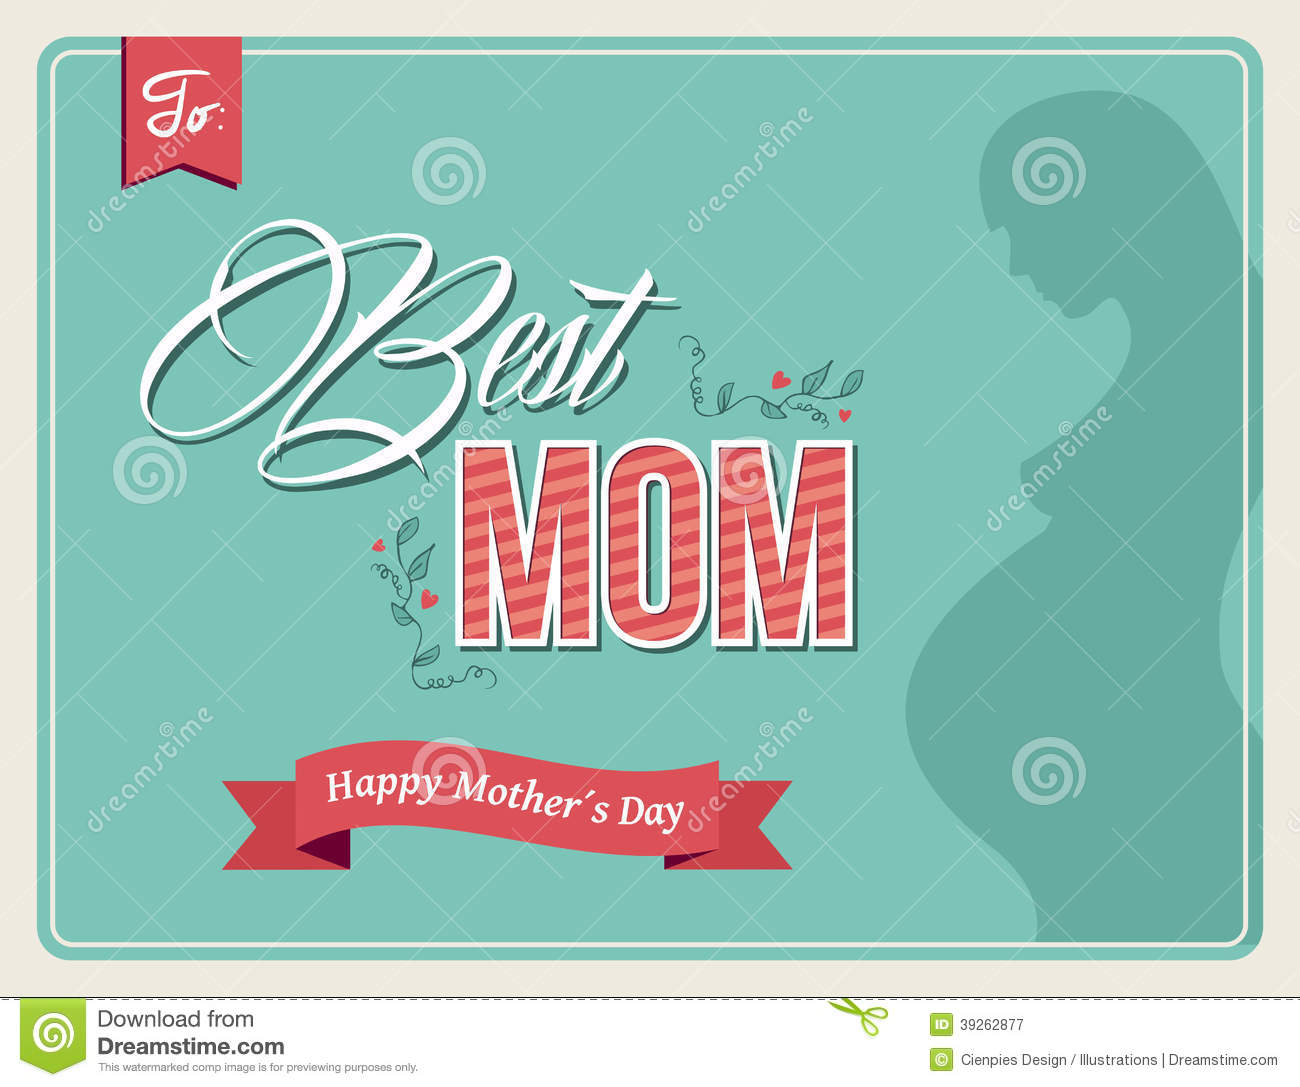 Vintage happy mothers day colors greeting card stock vector vintage happy mothers day colors greeting card kristyandbryce Gallery